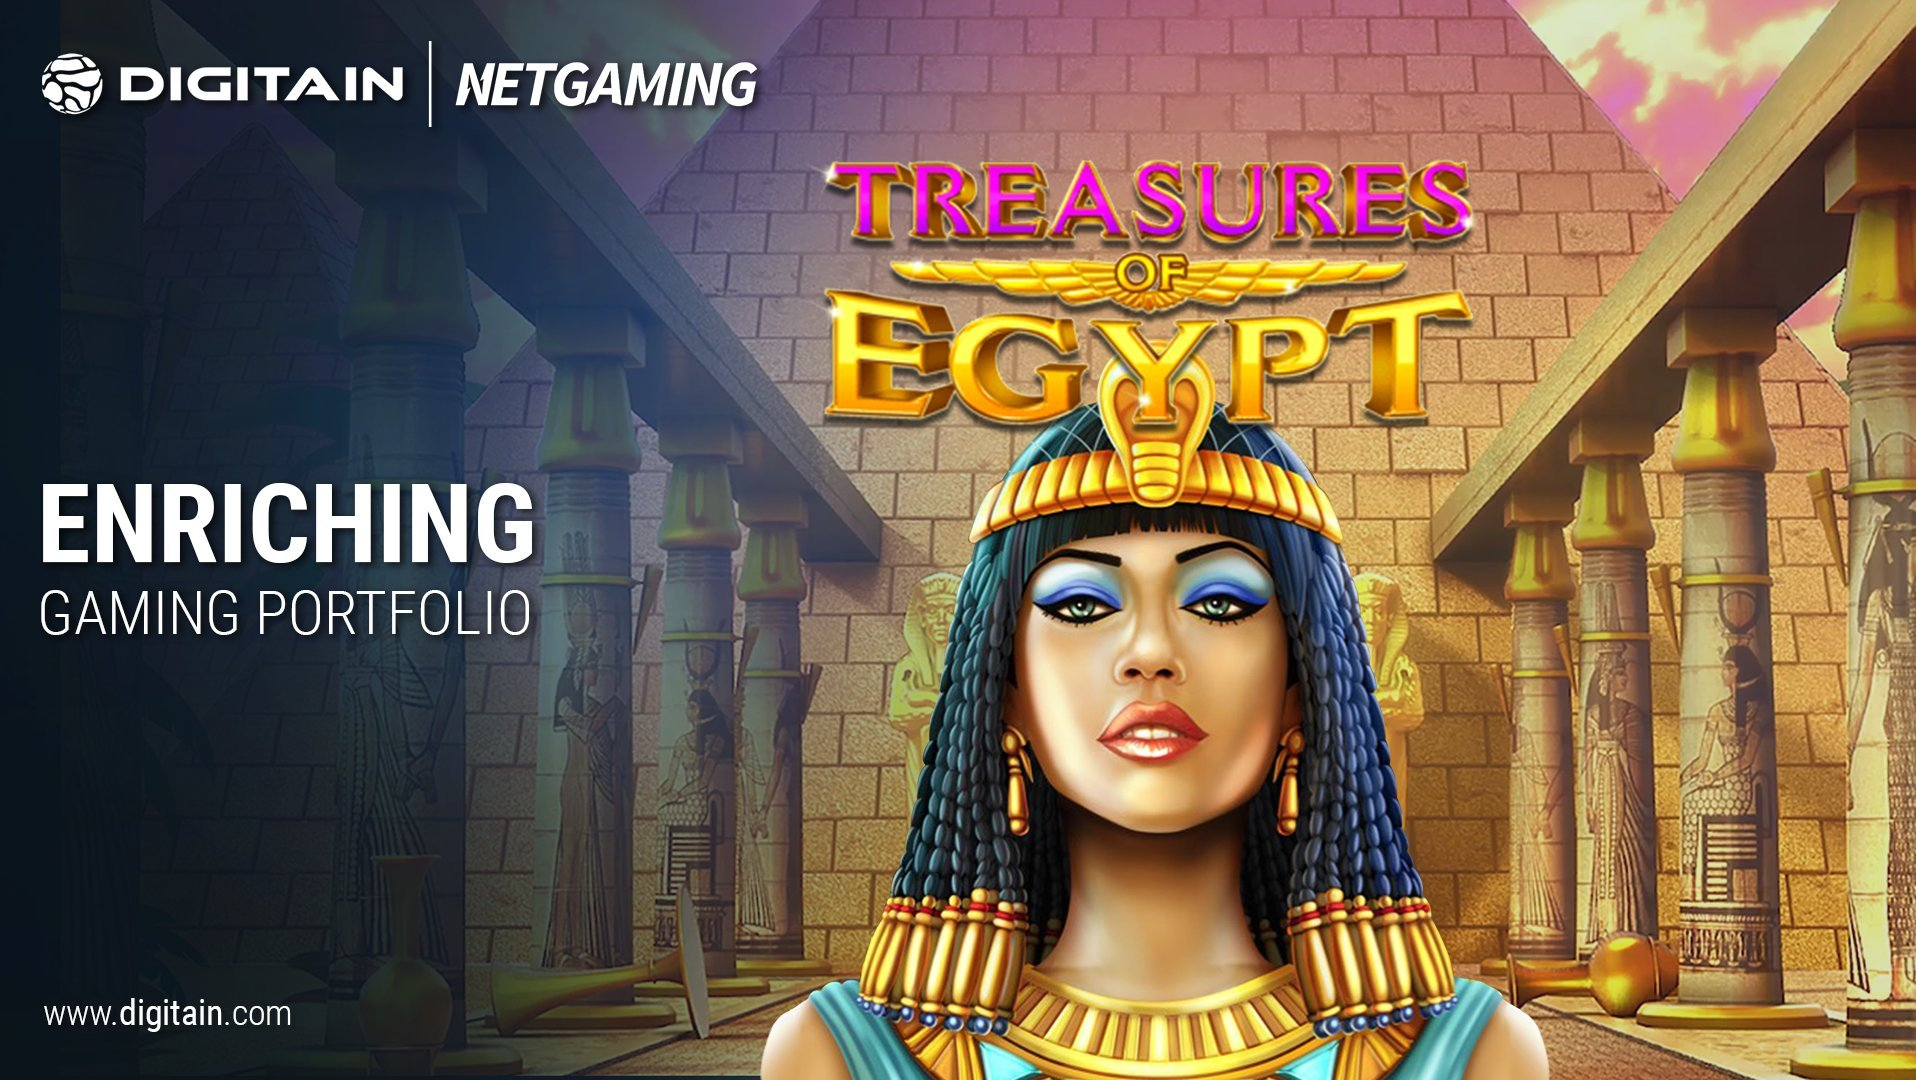 Digitain Further Expands Content Portfolio With NetGaming